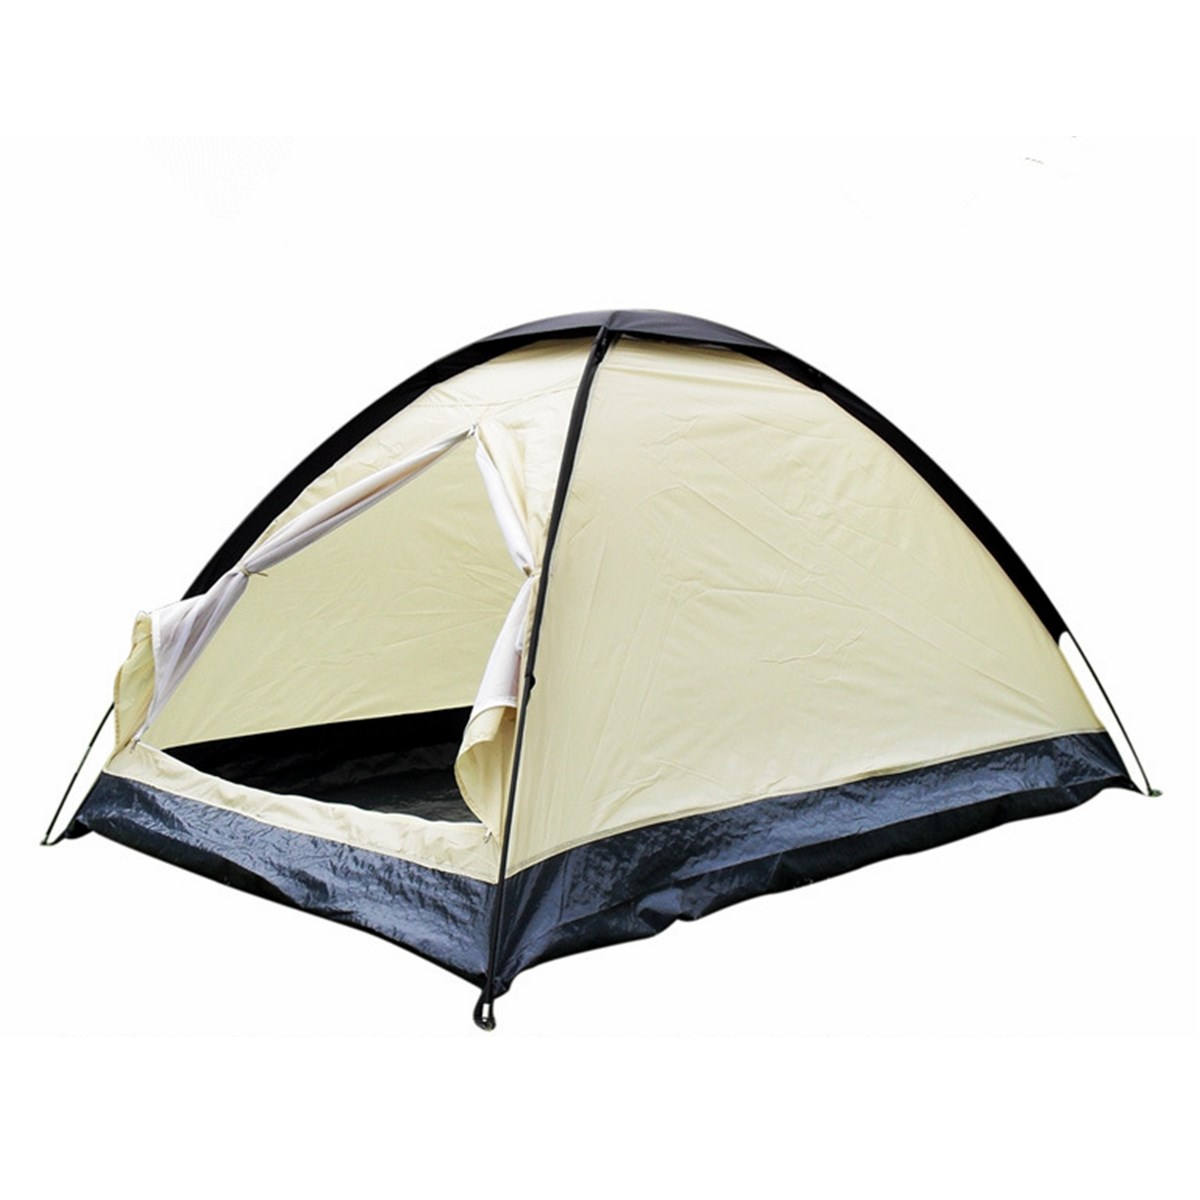 Ultralight Rainproof polyester 2 Person UV Protection Outdoor travel Camping Hiking dome Tent Single Layer beach shelter tent(China (Mainland))